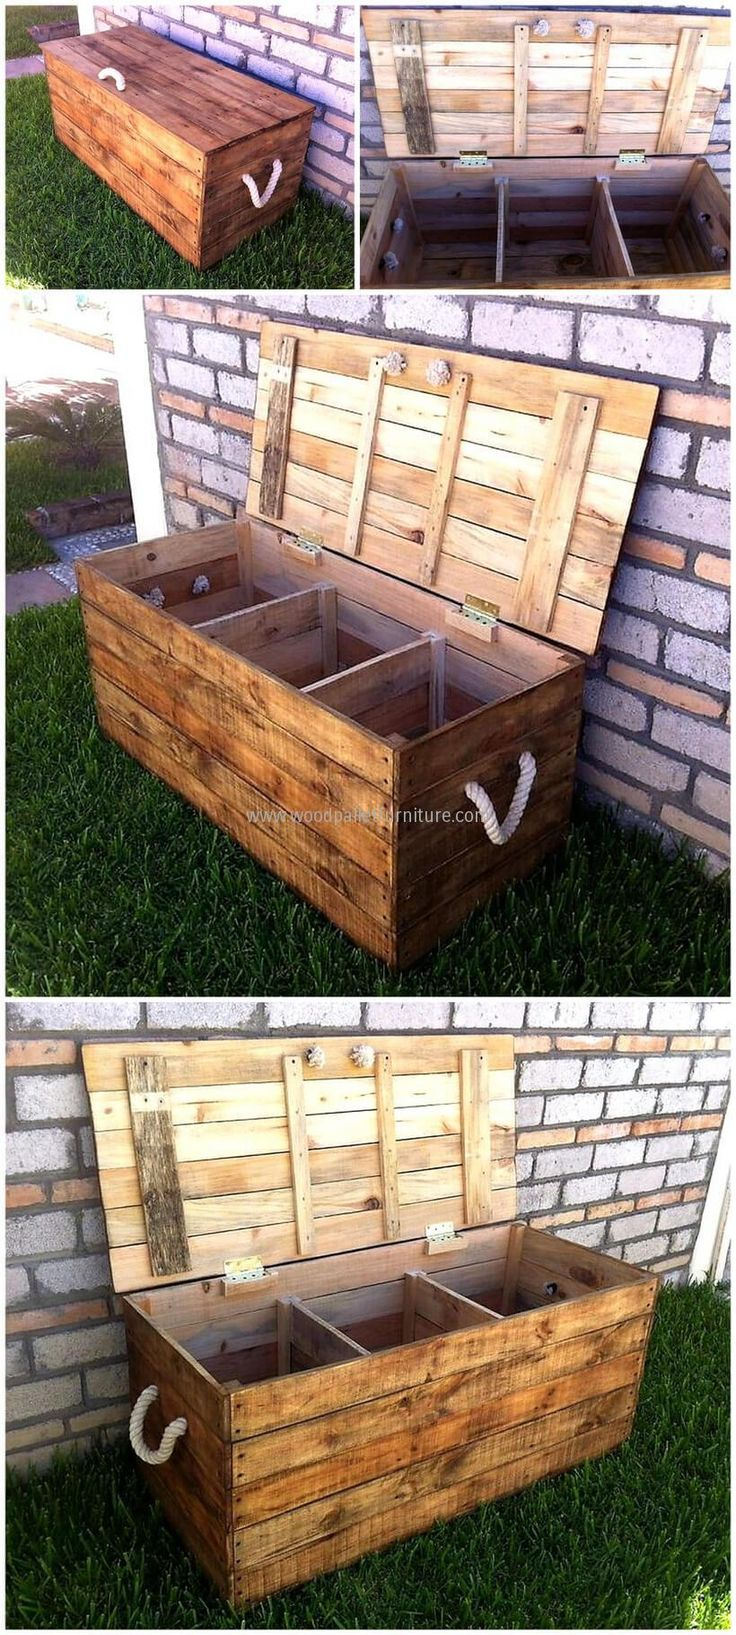 Wooden transport pallets have become increasingly popular for diy - Creative Diy Wood Pallet Ideas